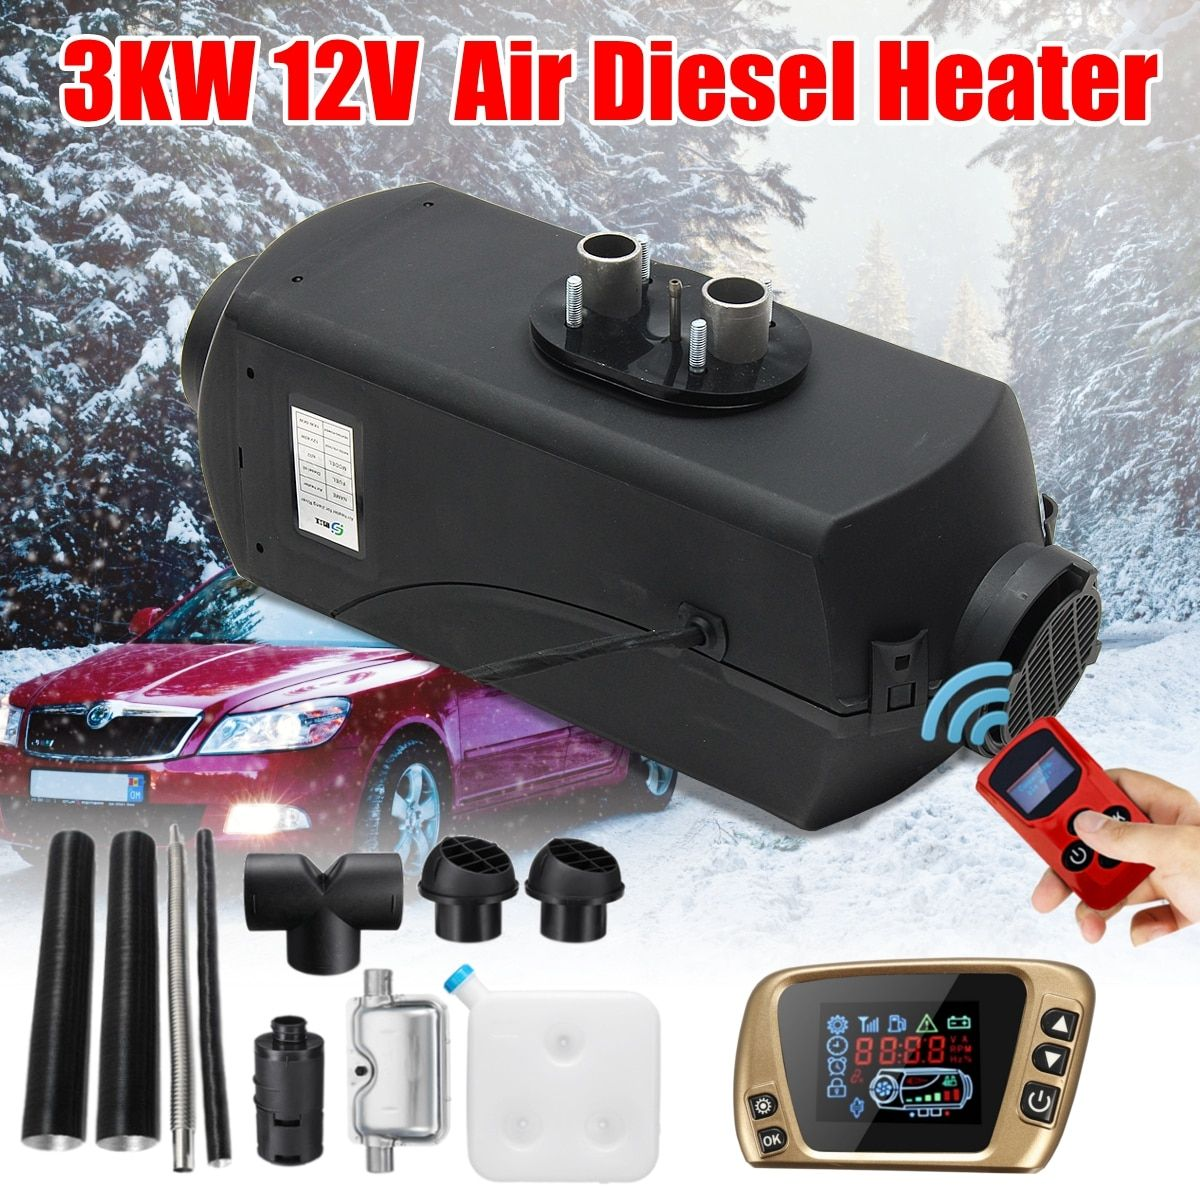 12V 3KW Diesels Air Parking Heater Air Heating 3000W LCD Switch For Boats Bus Car Trailer Heater +Silencer +Remote control